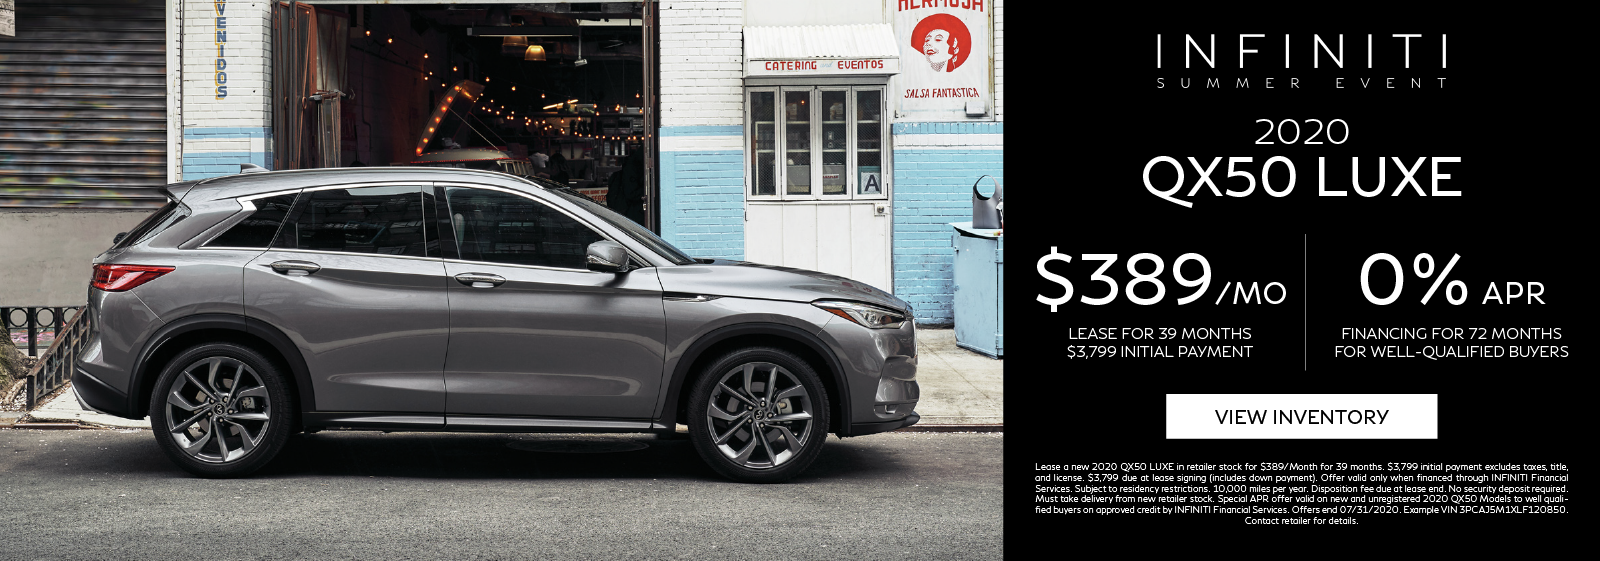 Lease a new 2020 QX50 LUXE for $389 per month for 39 months. Click to view inventory.